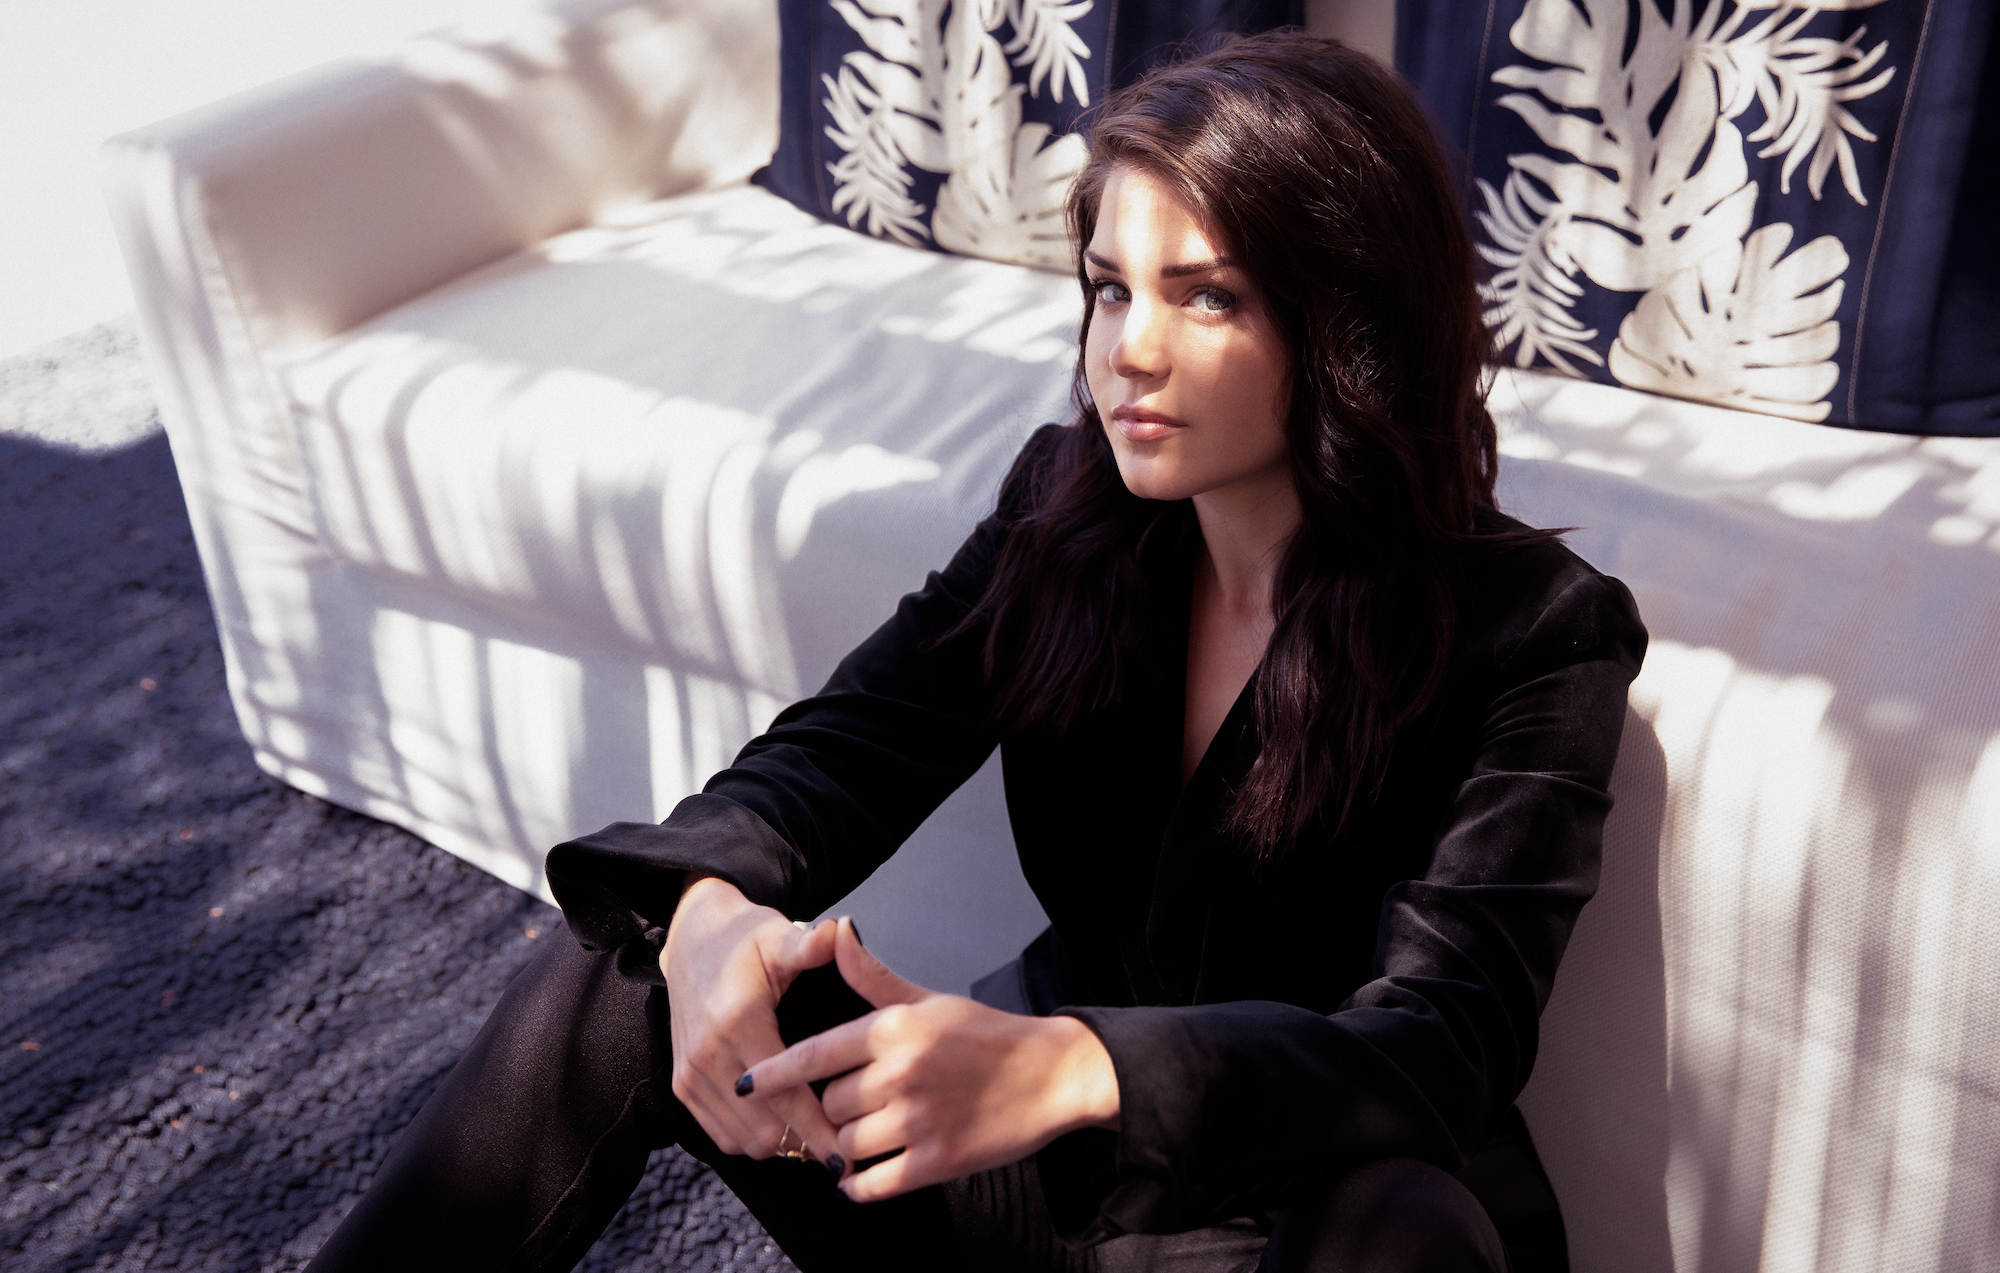 Marie Avgeropoulos wearign all black against white sofa